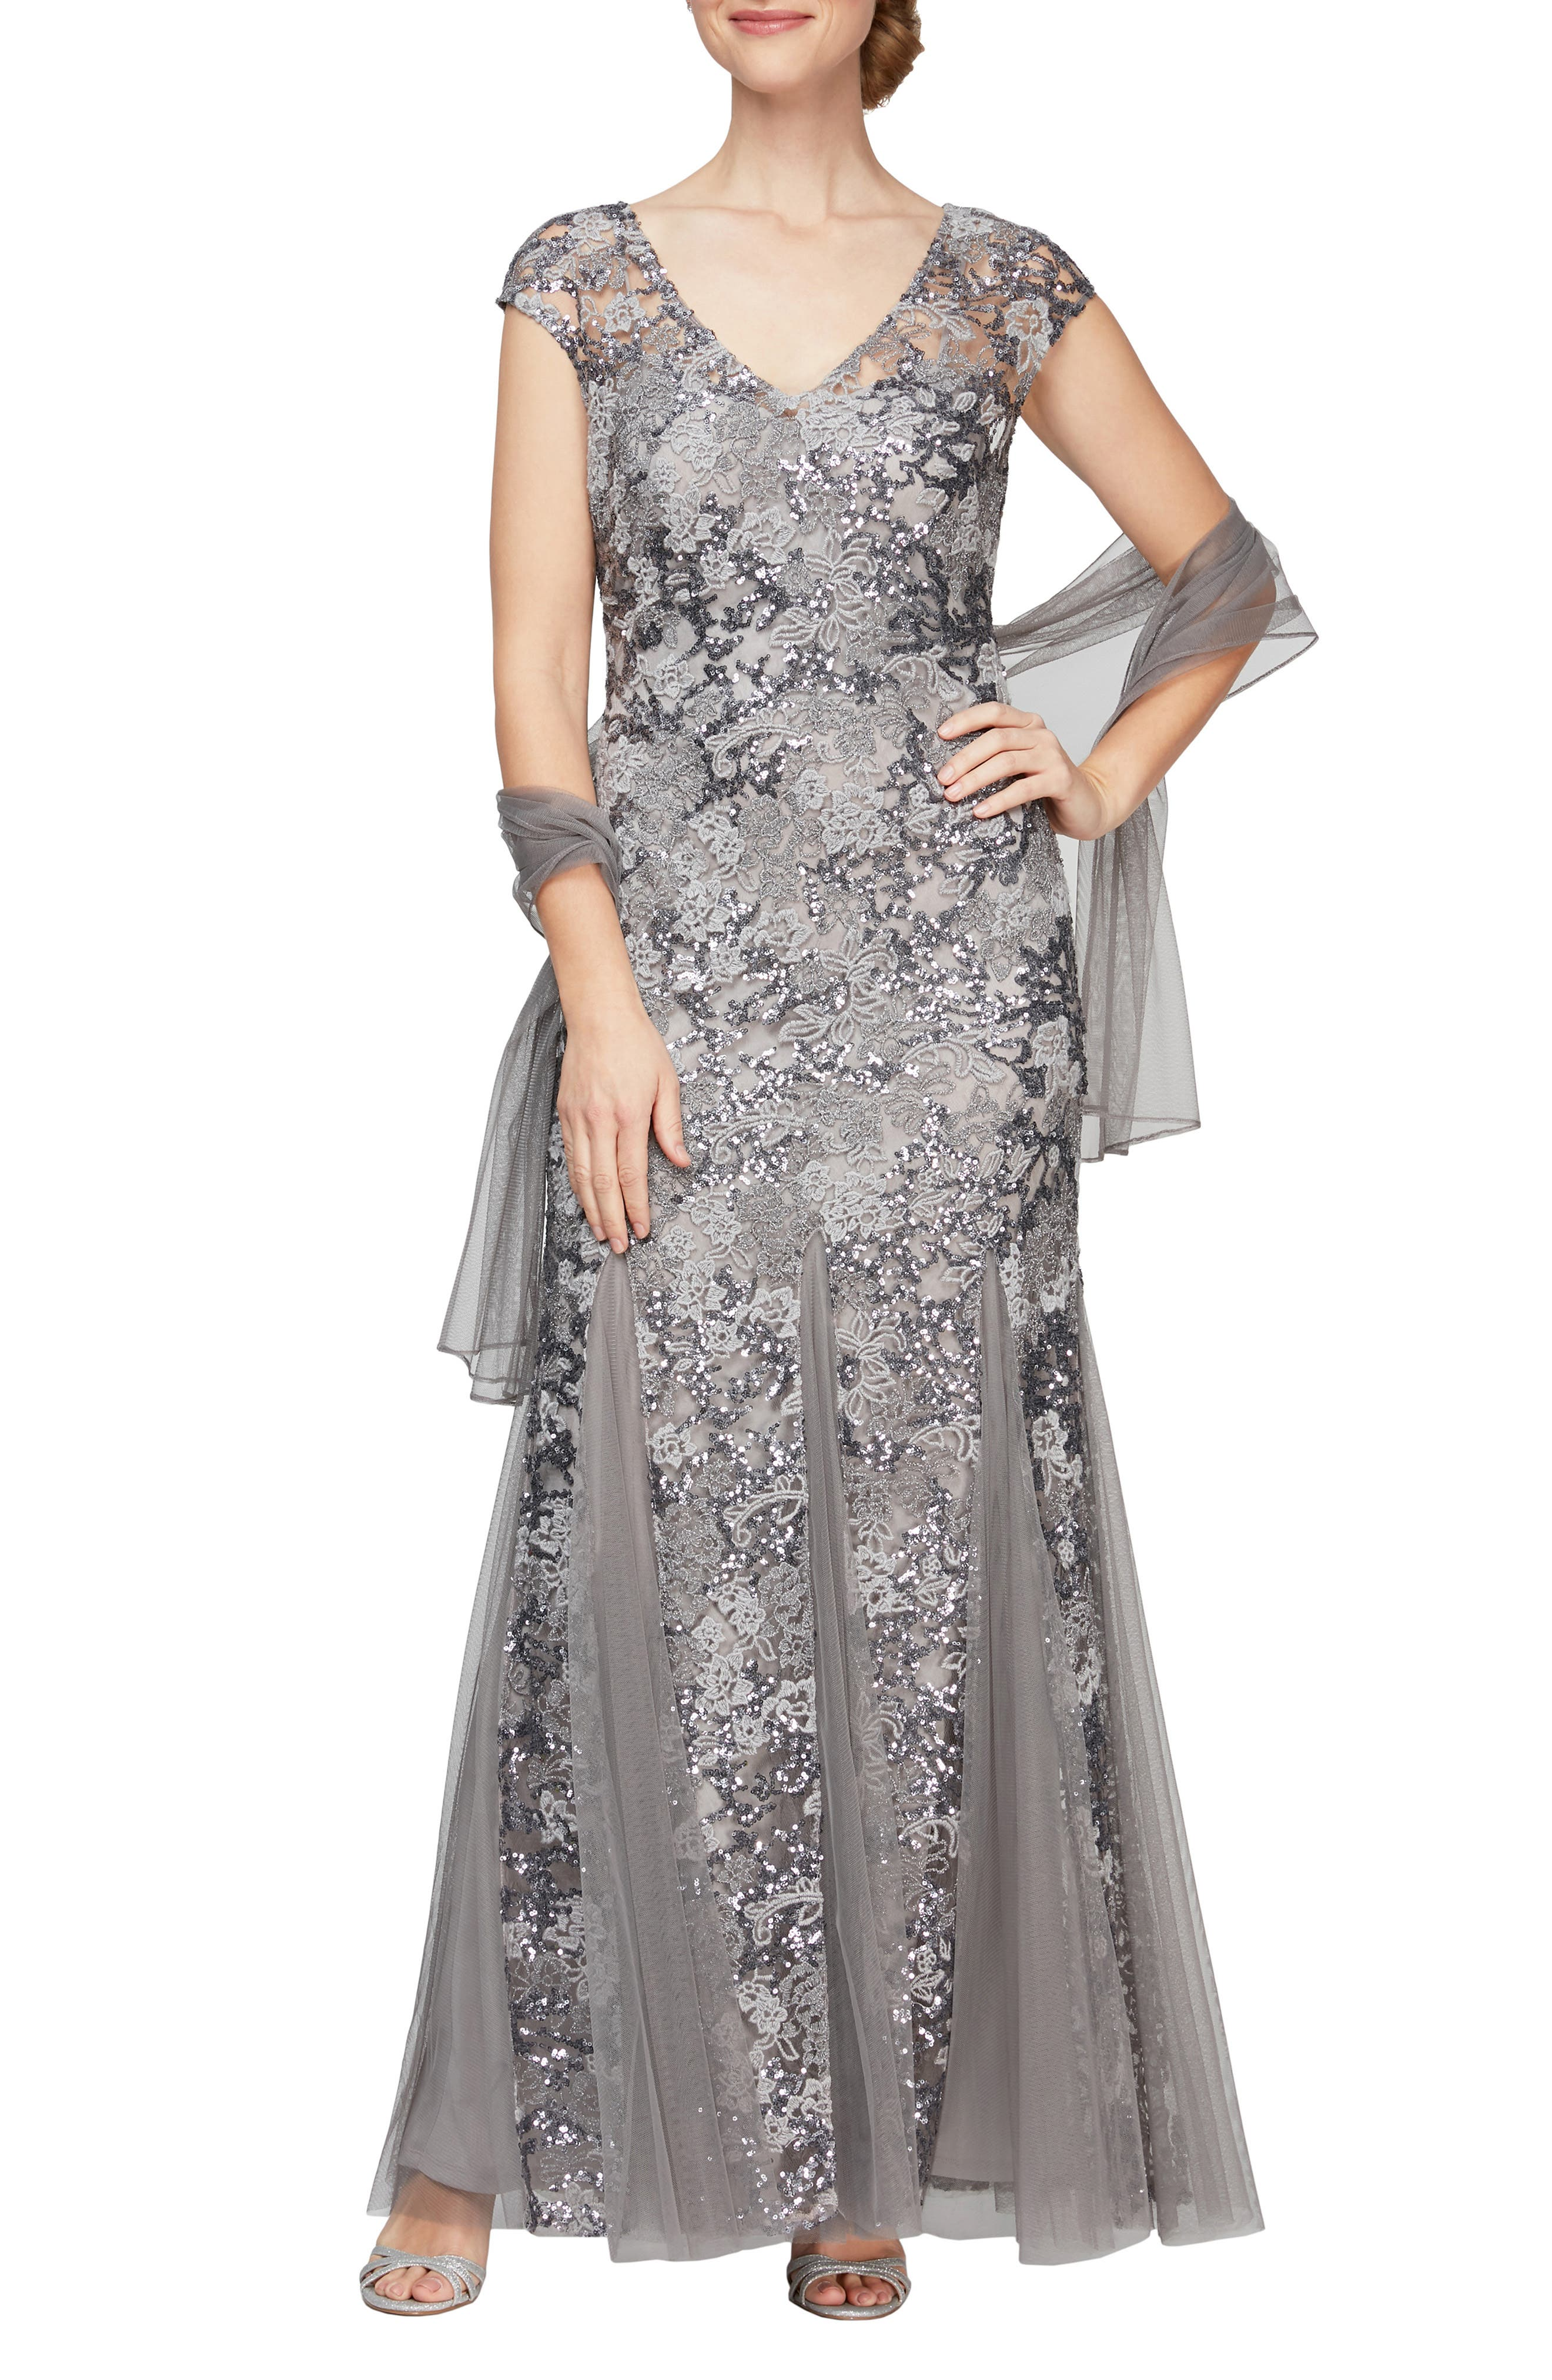 1930s Evening Dresses | Old Hollywood Silver Screen Dresses Womens Alex Evenings Sequin Embroidered Trumpet Gown Size 14 - Metallic $259.00 AT vintagedancer.com